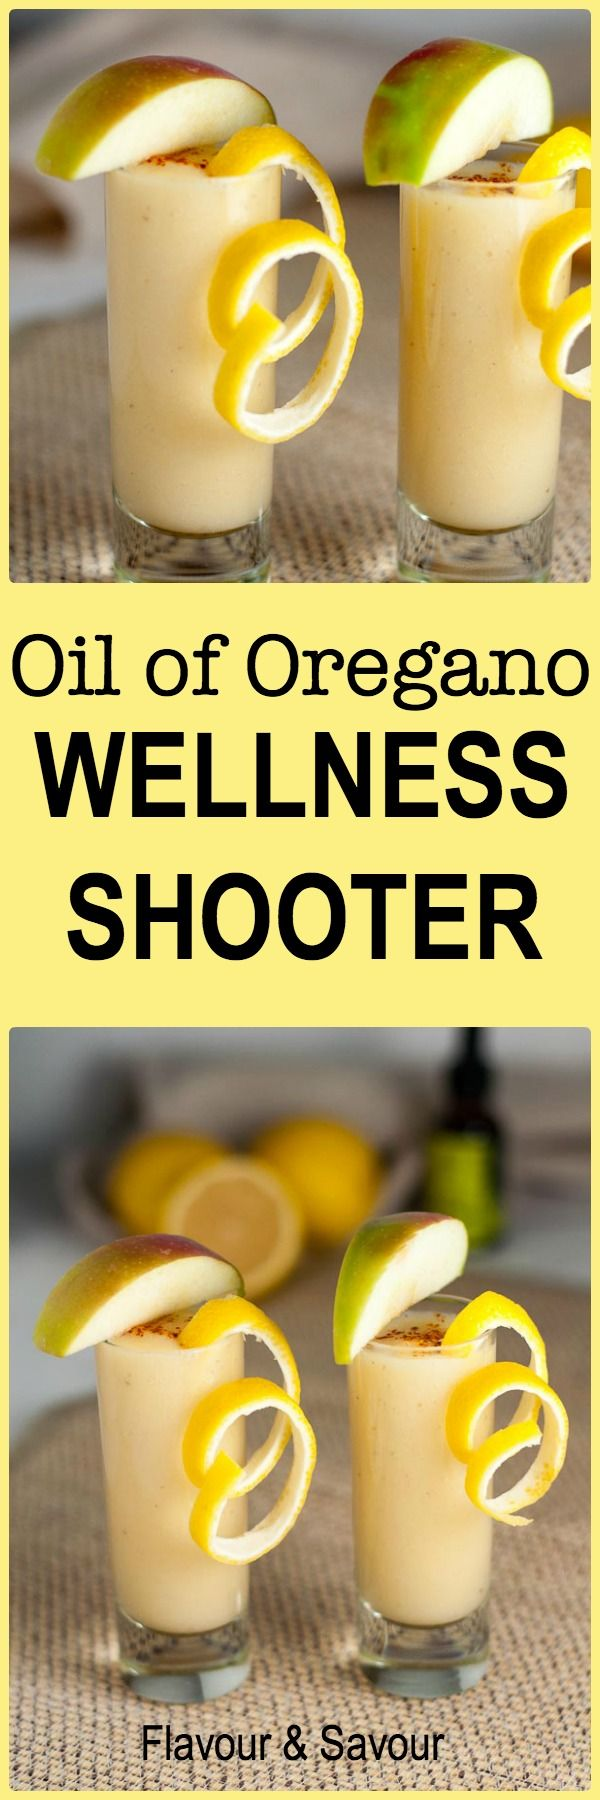 Oil of Oregano Wellness Shooter. Take at the first sign of a cold to help fight it off. Full of immune boosting lemon, ginger, apple and cayenne. Tastes WAY better than straight Oil of Oregano!!